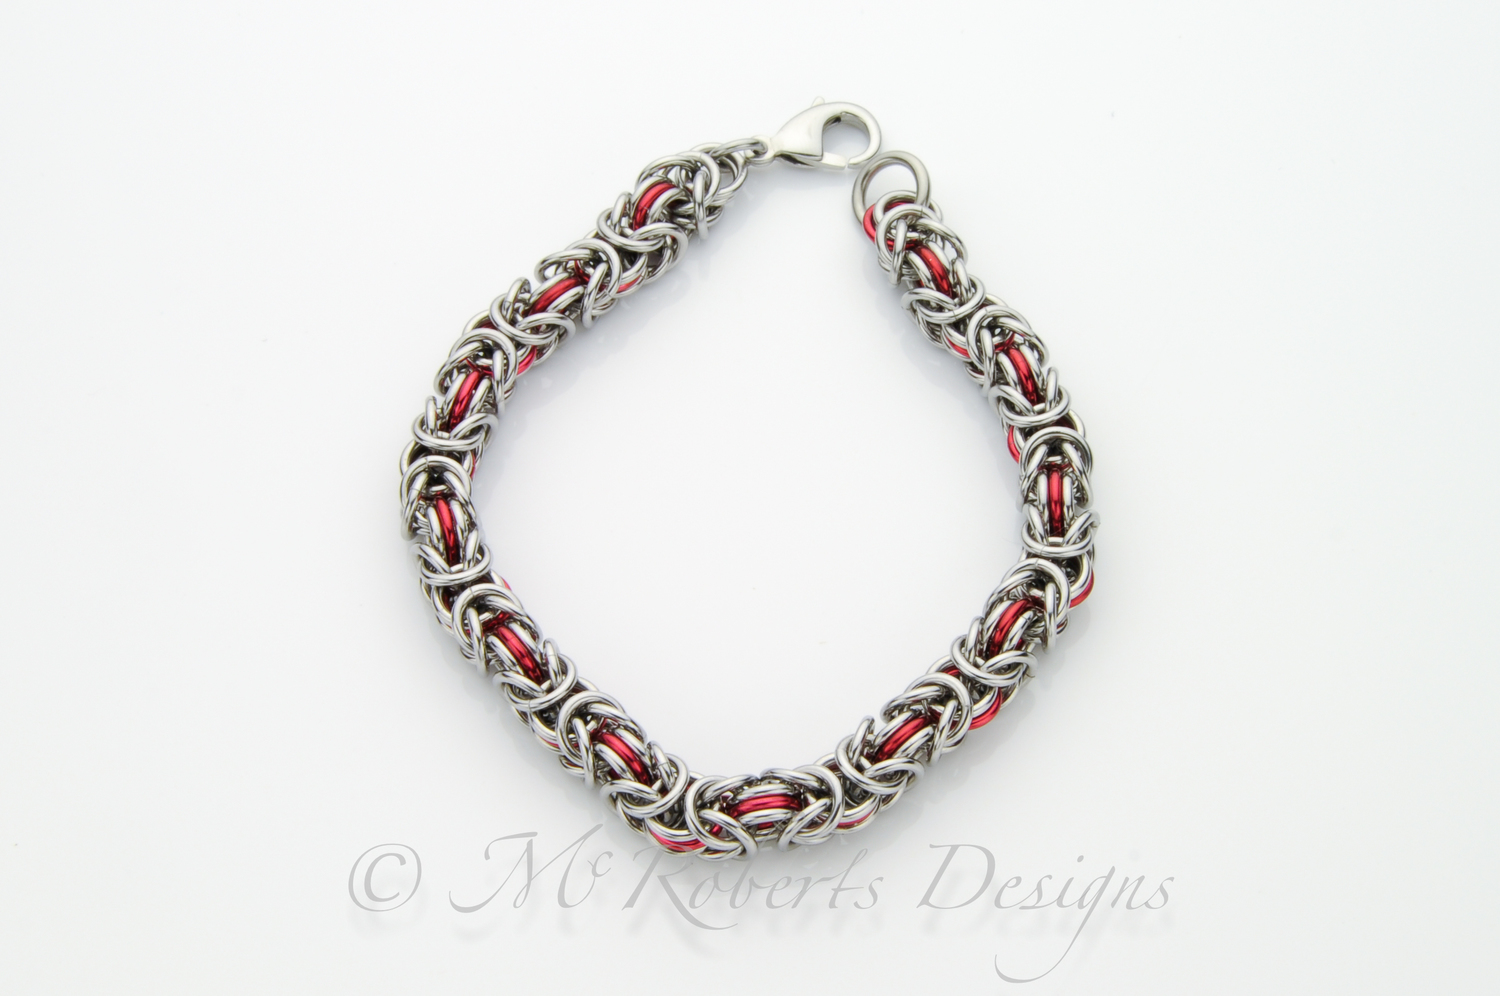 made with stanless steel and red anodized aluminum